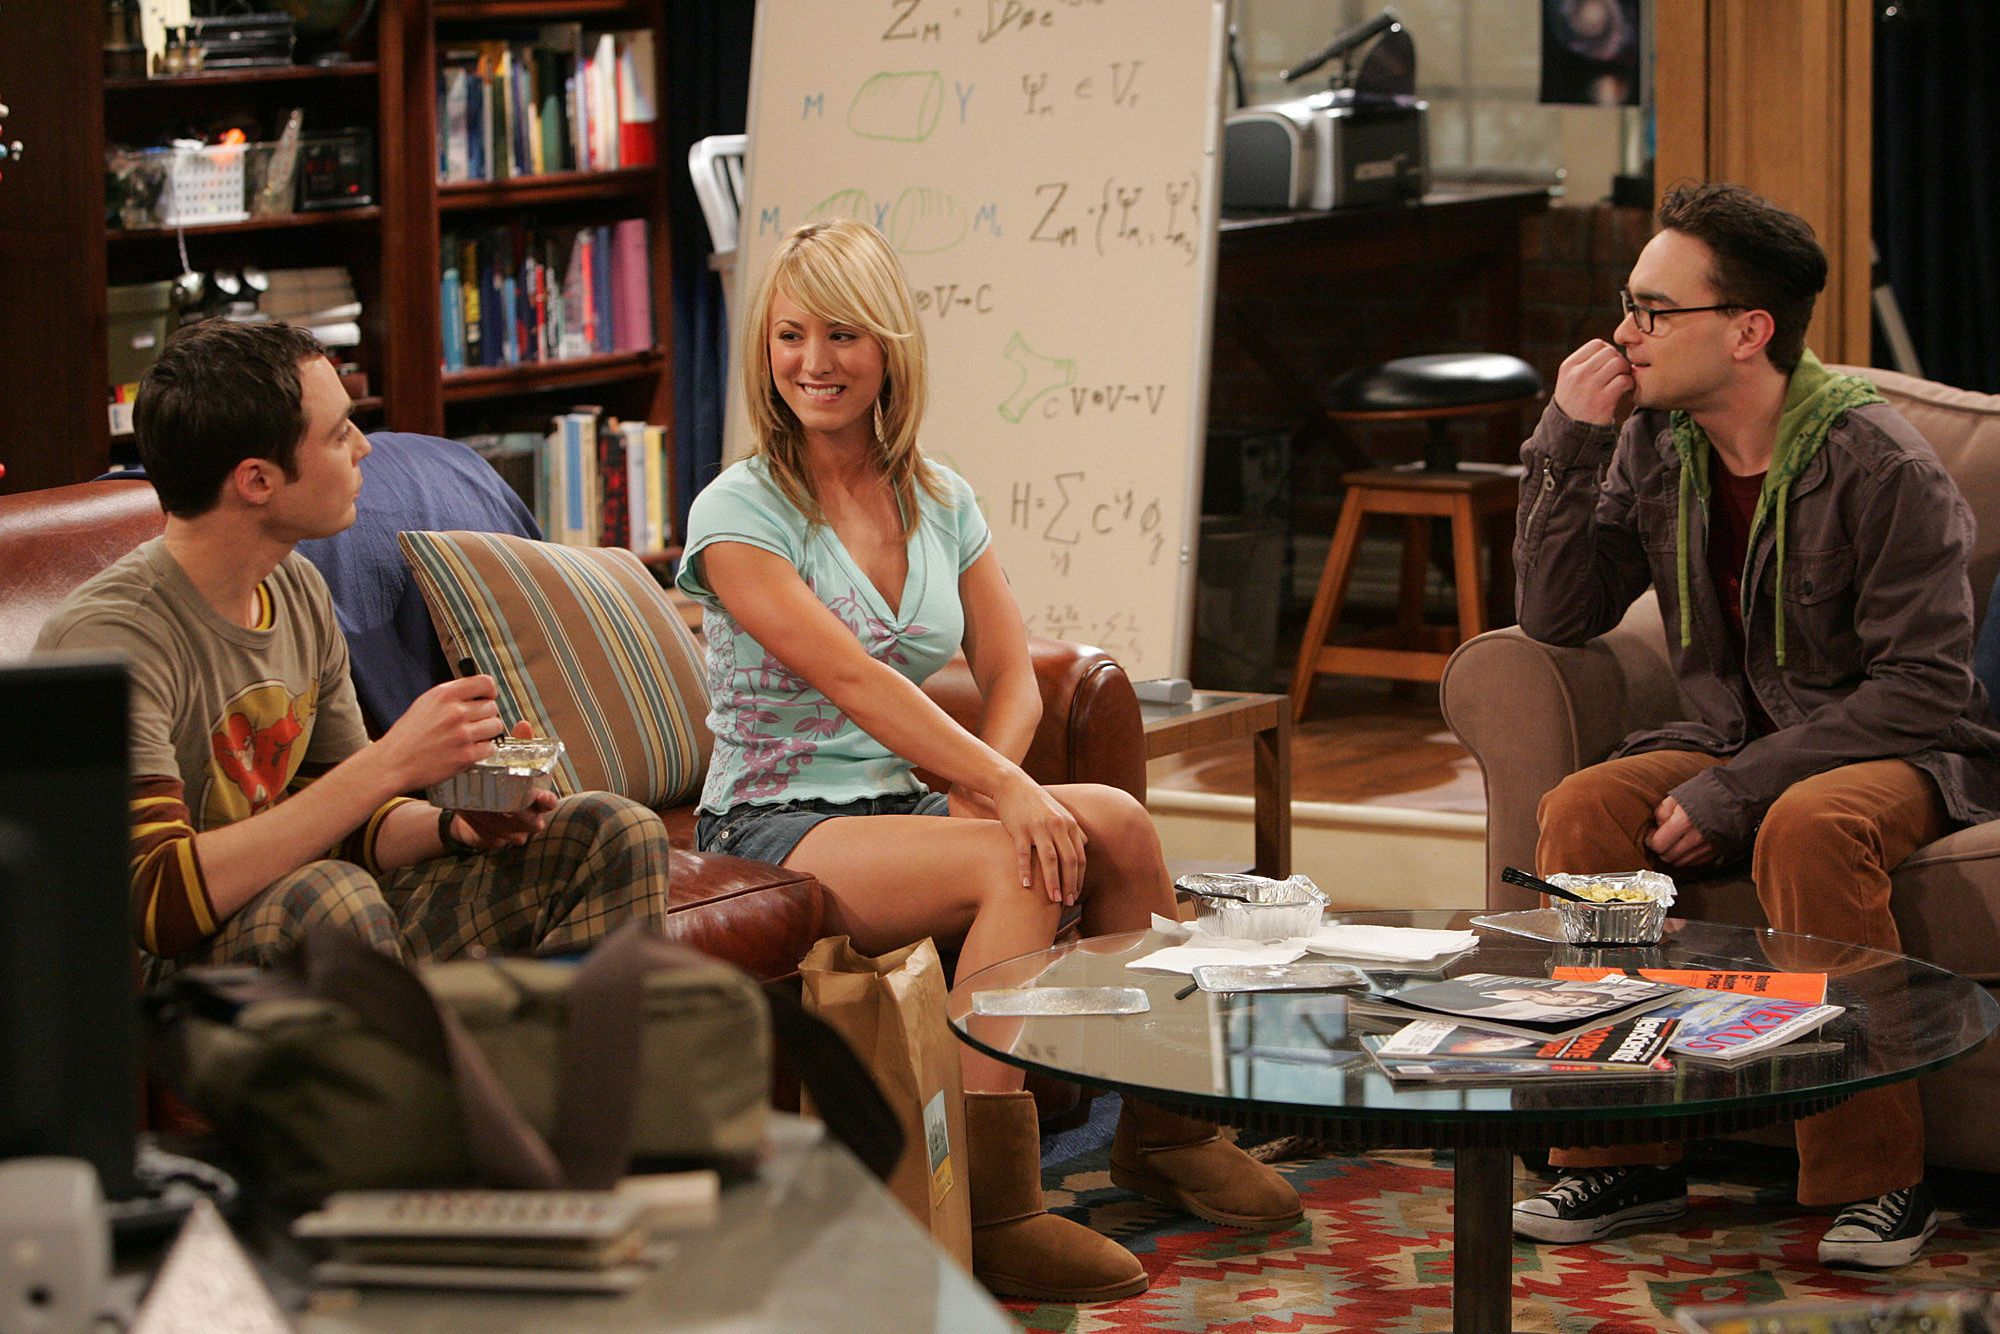 'The Big Bang Theory': After floundering last season, top sitcom is wise to wrap up